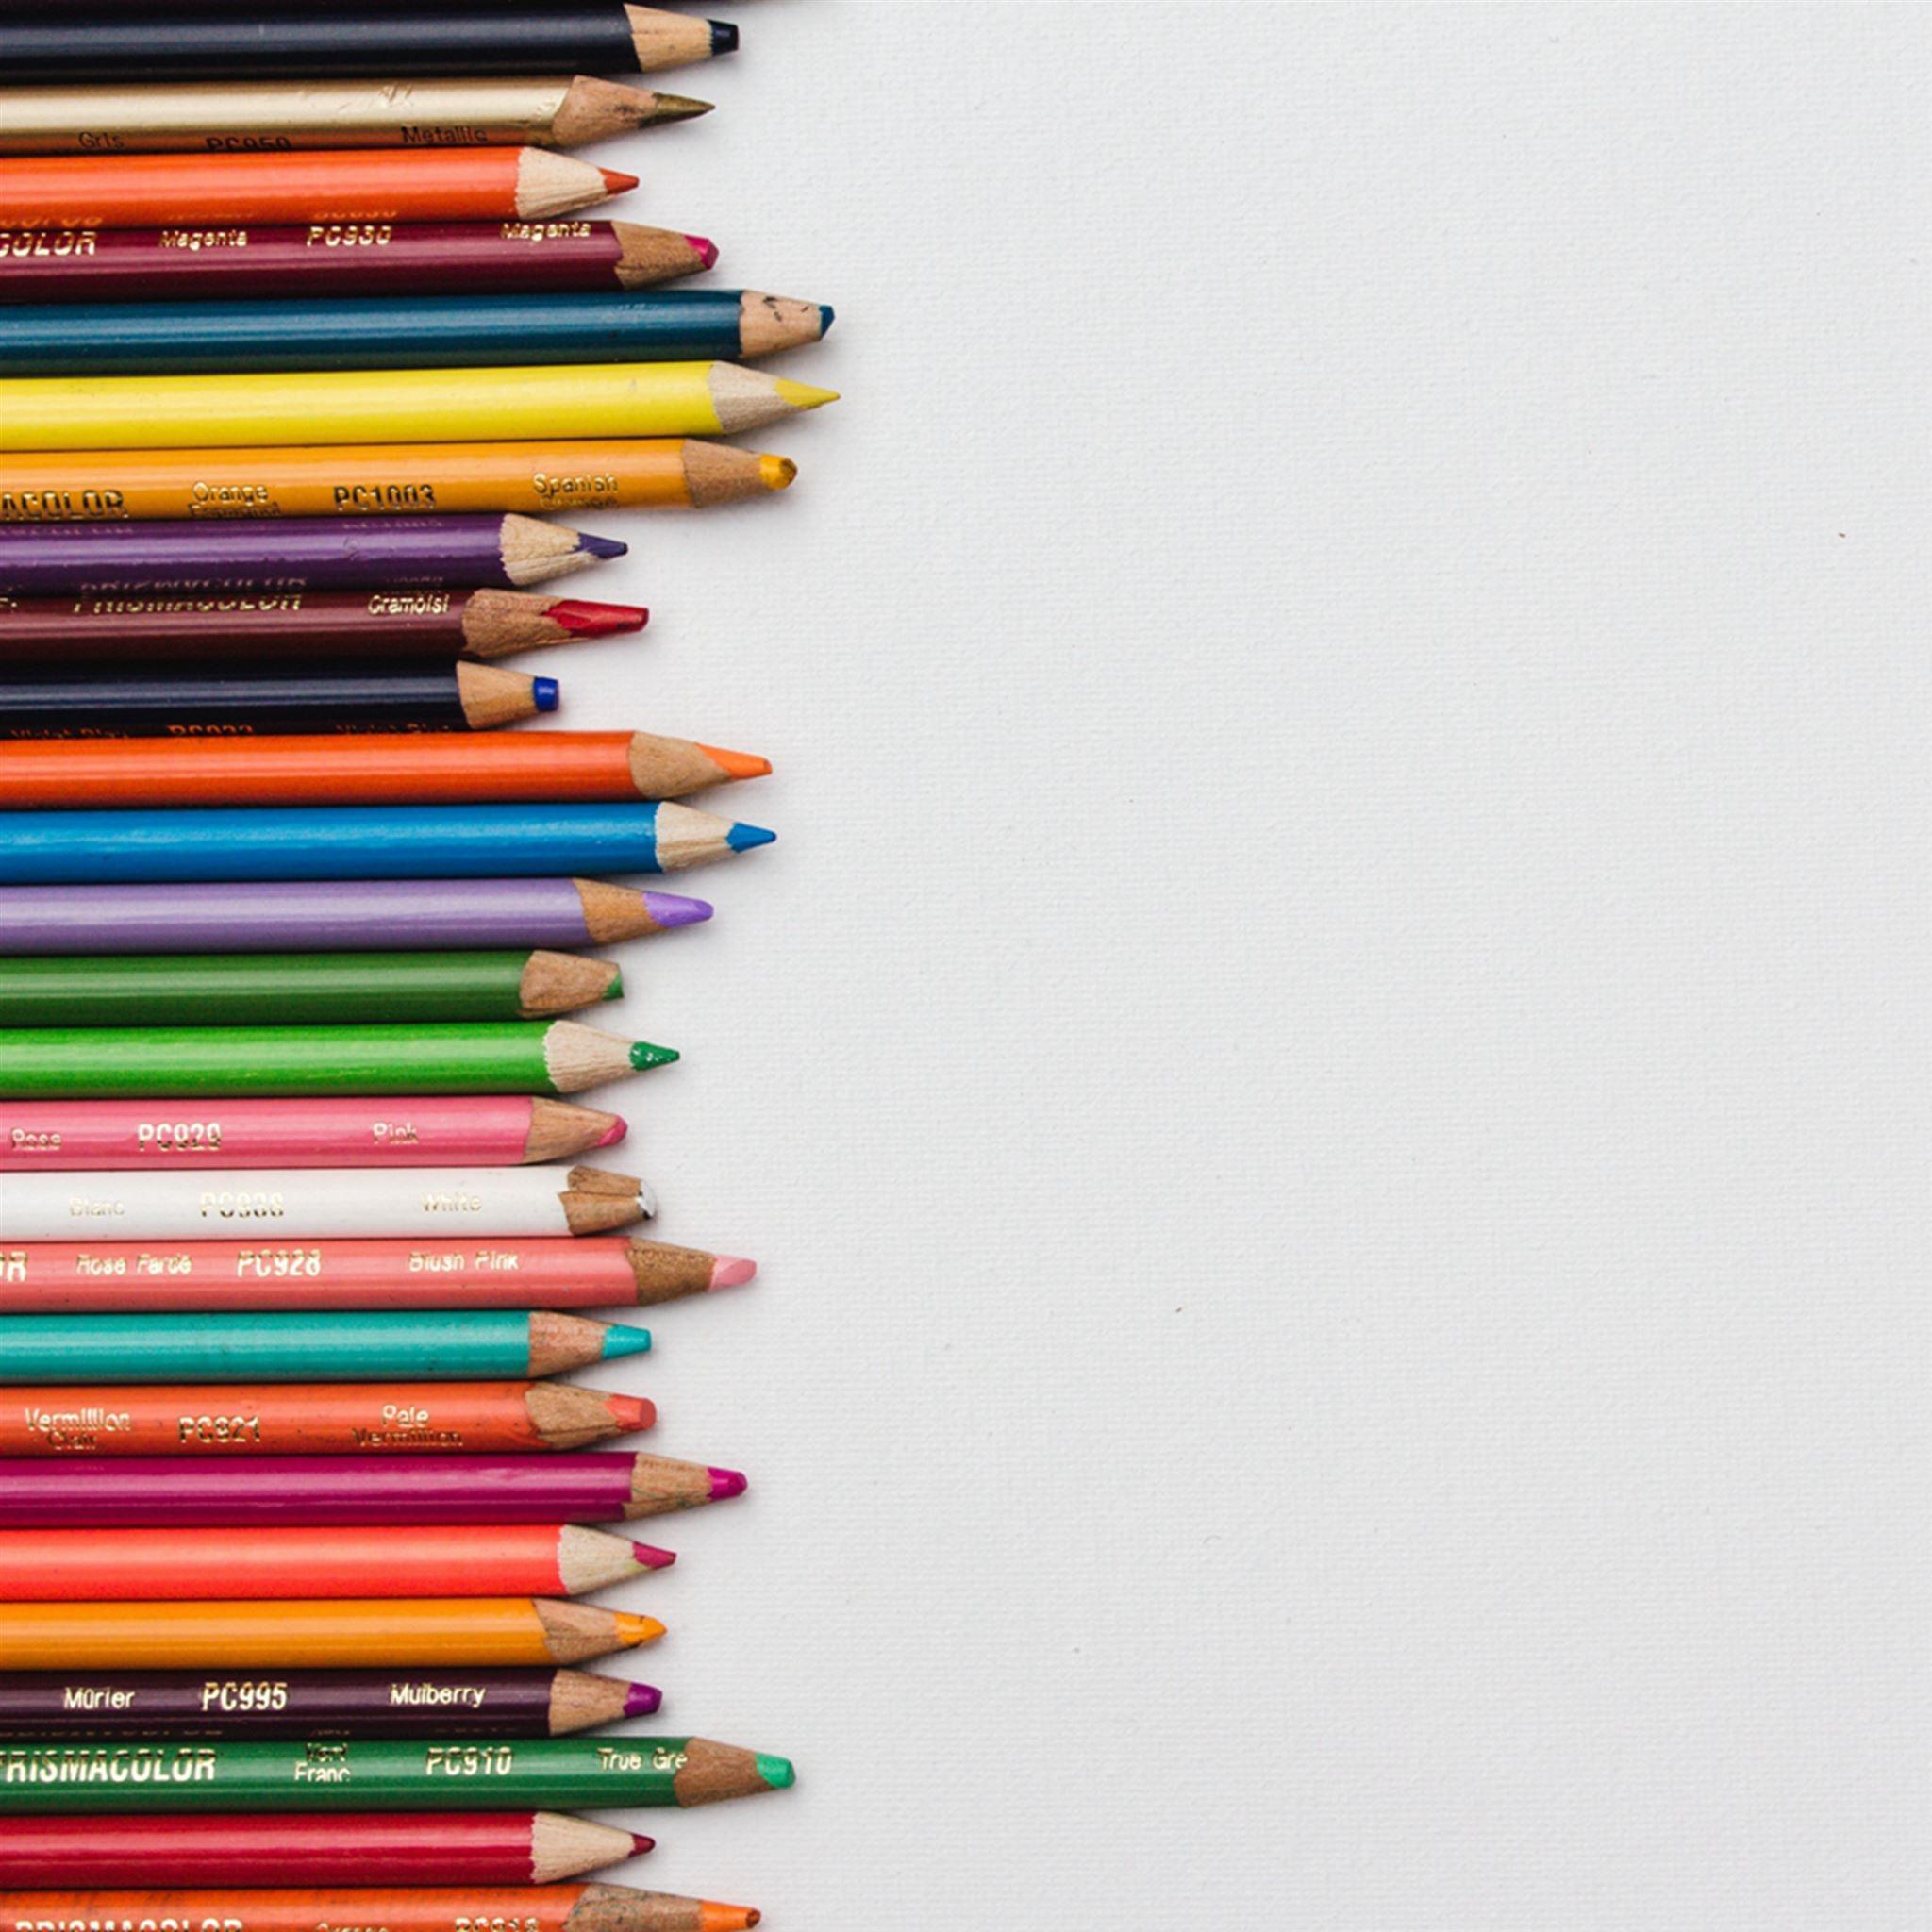 Colored Pencils Set Sharpened iPad Pro wallpaper